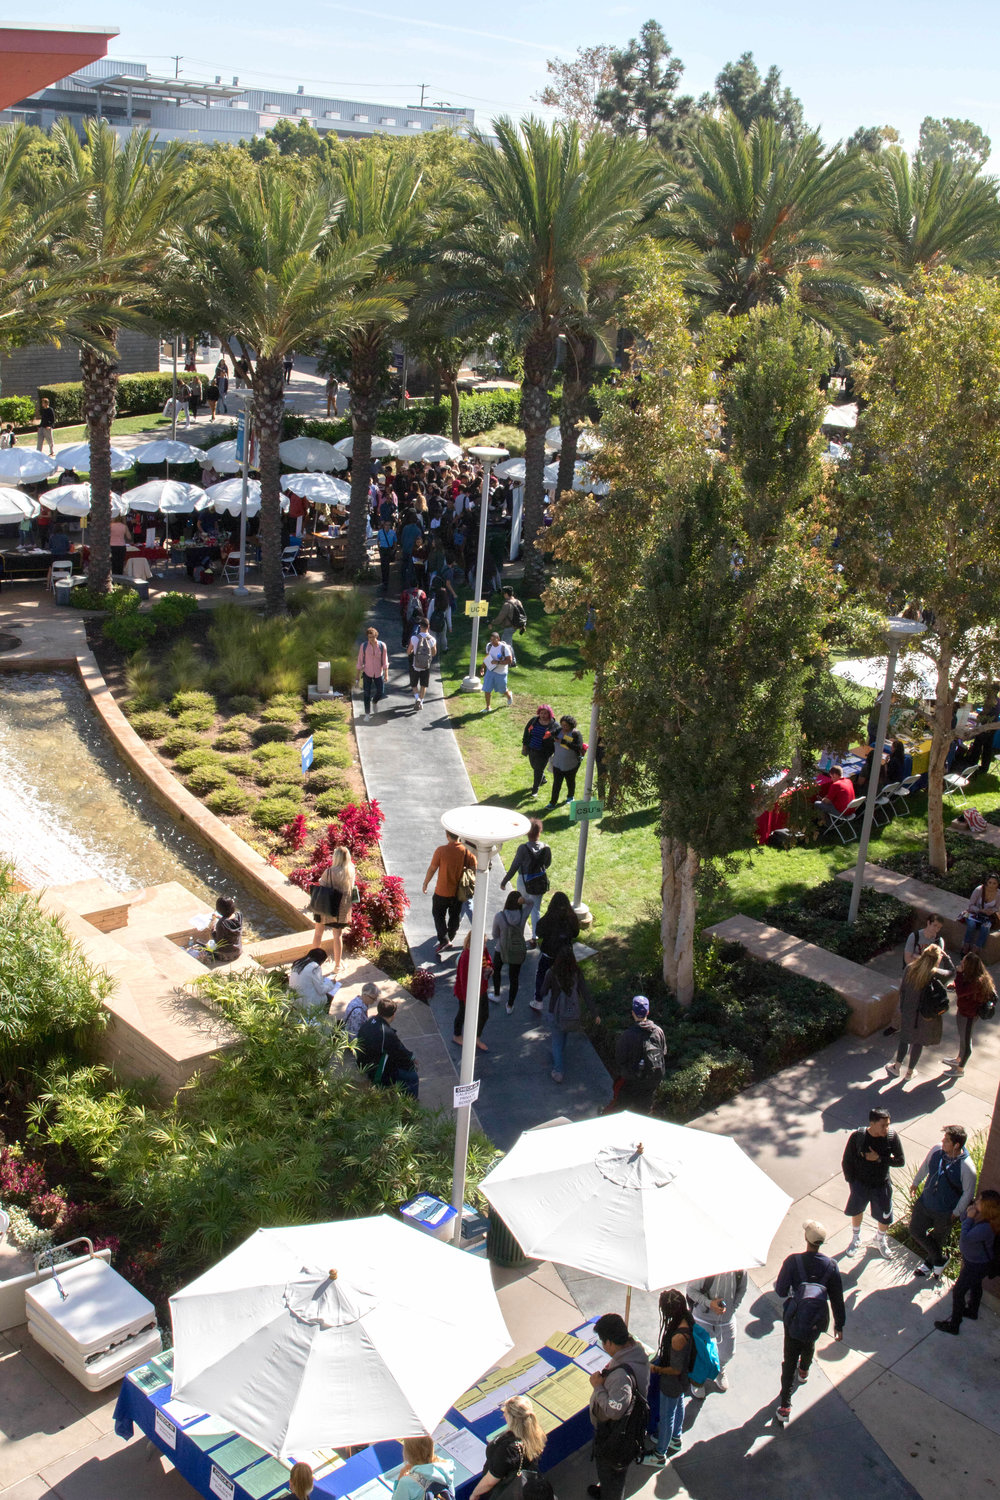 Students fill the Santa Monica College Main Campus Quad on October 10 2017 to scope out potential schools for them to transfer to as part of Santa Monica Colleges Annual College Fair. (Photo By: Zane Meyer-Thornton)